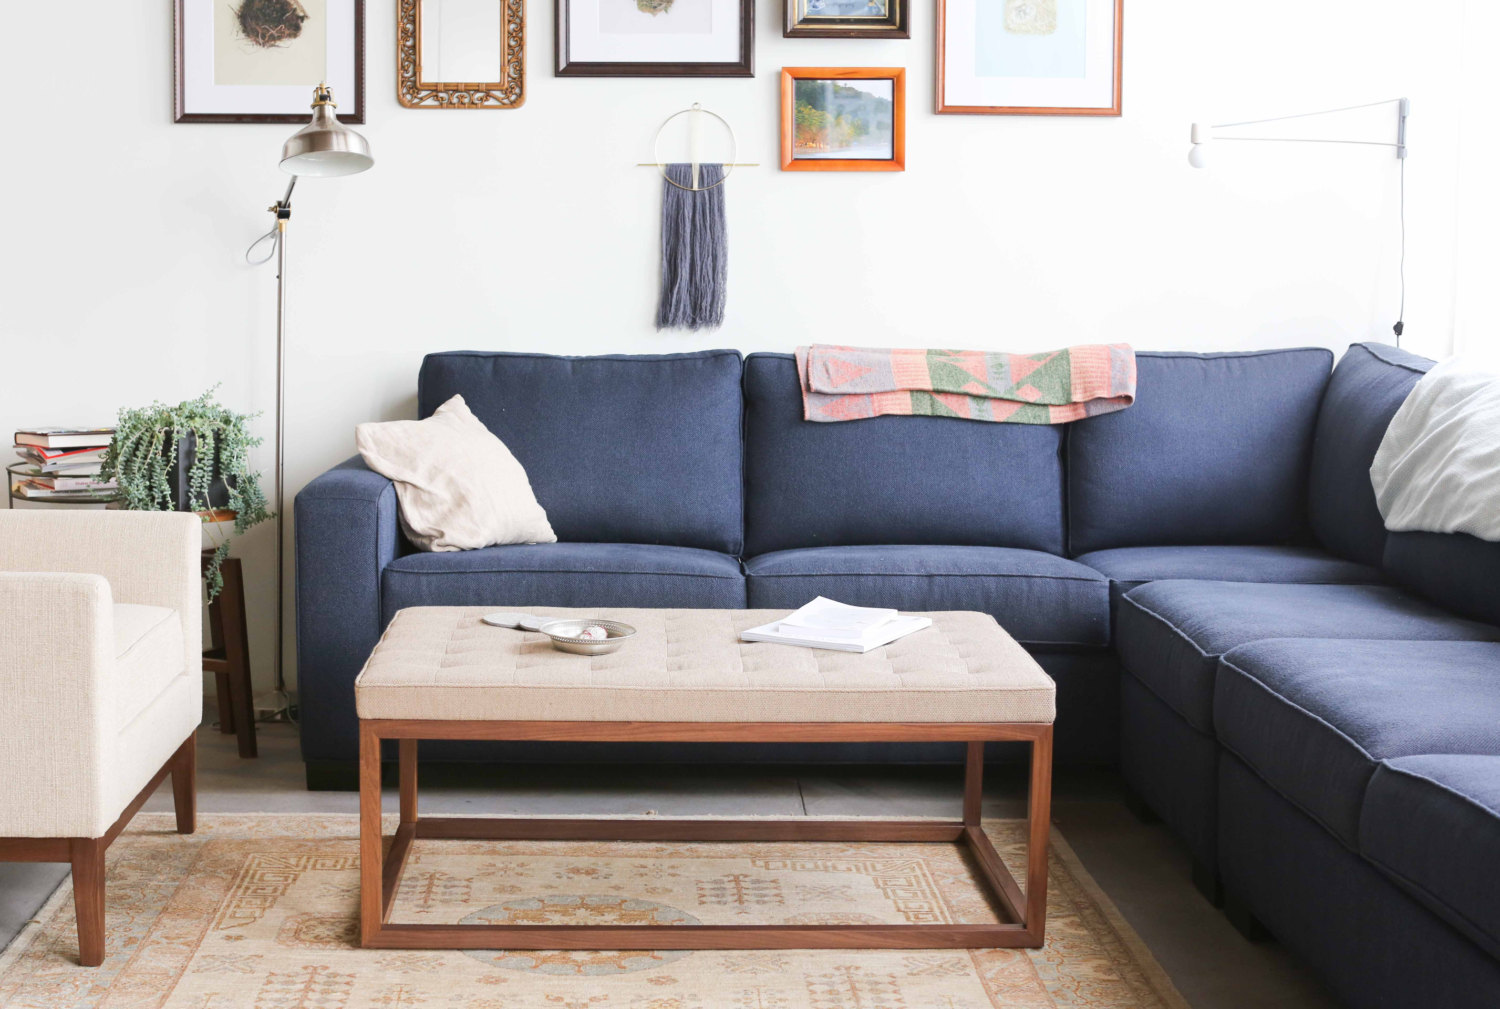 Midcentury-style ottoman/coffee table/bench